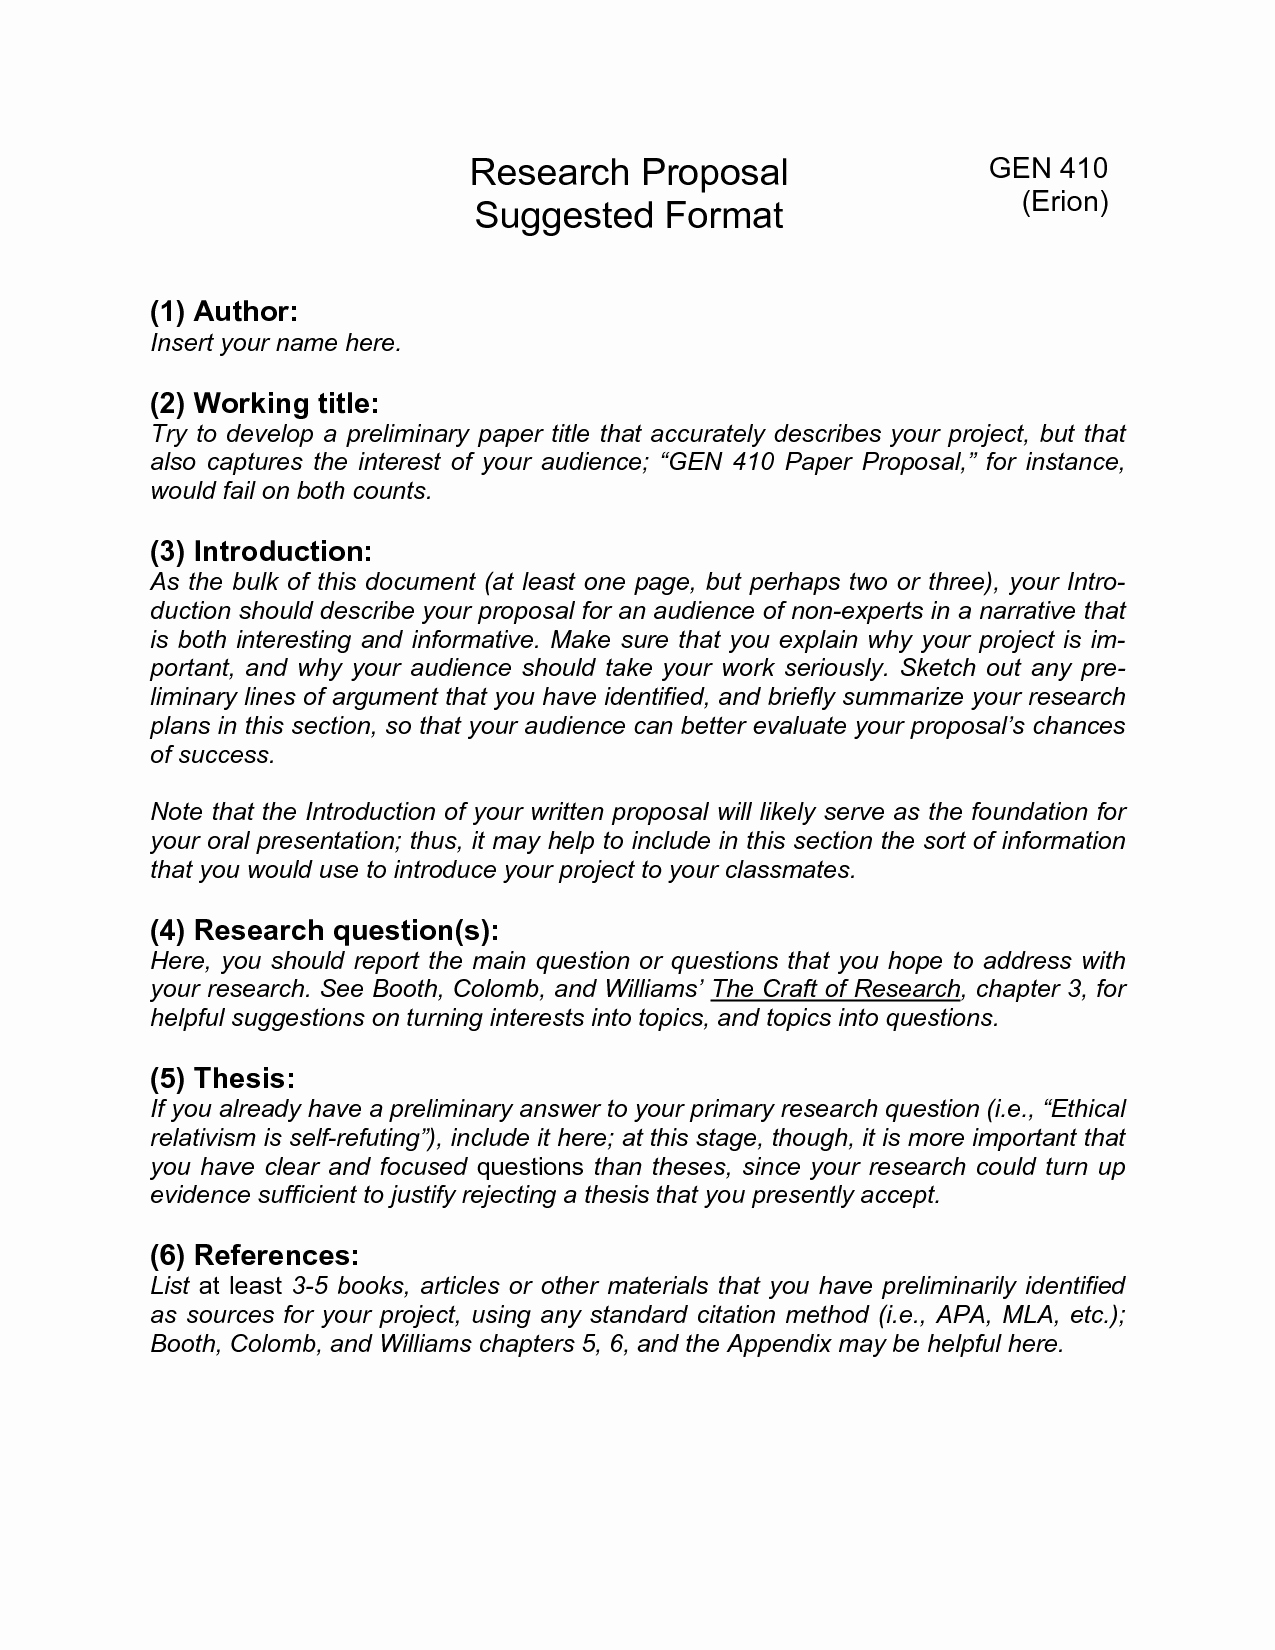 Research Proposal Outline Example Elegant What Constitutes A Quality Research Proposal How to